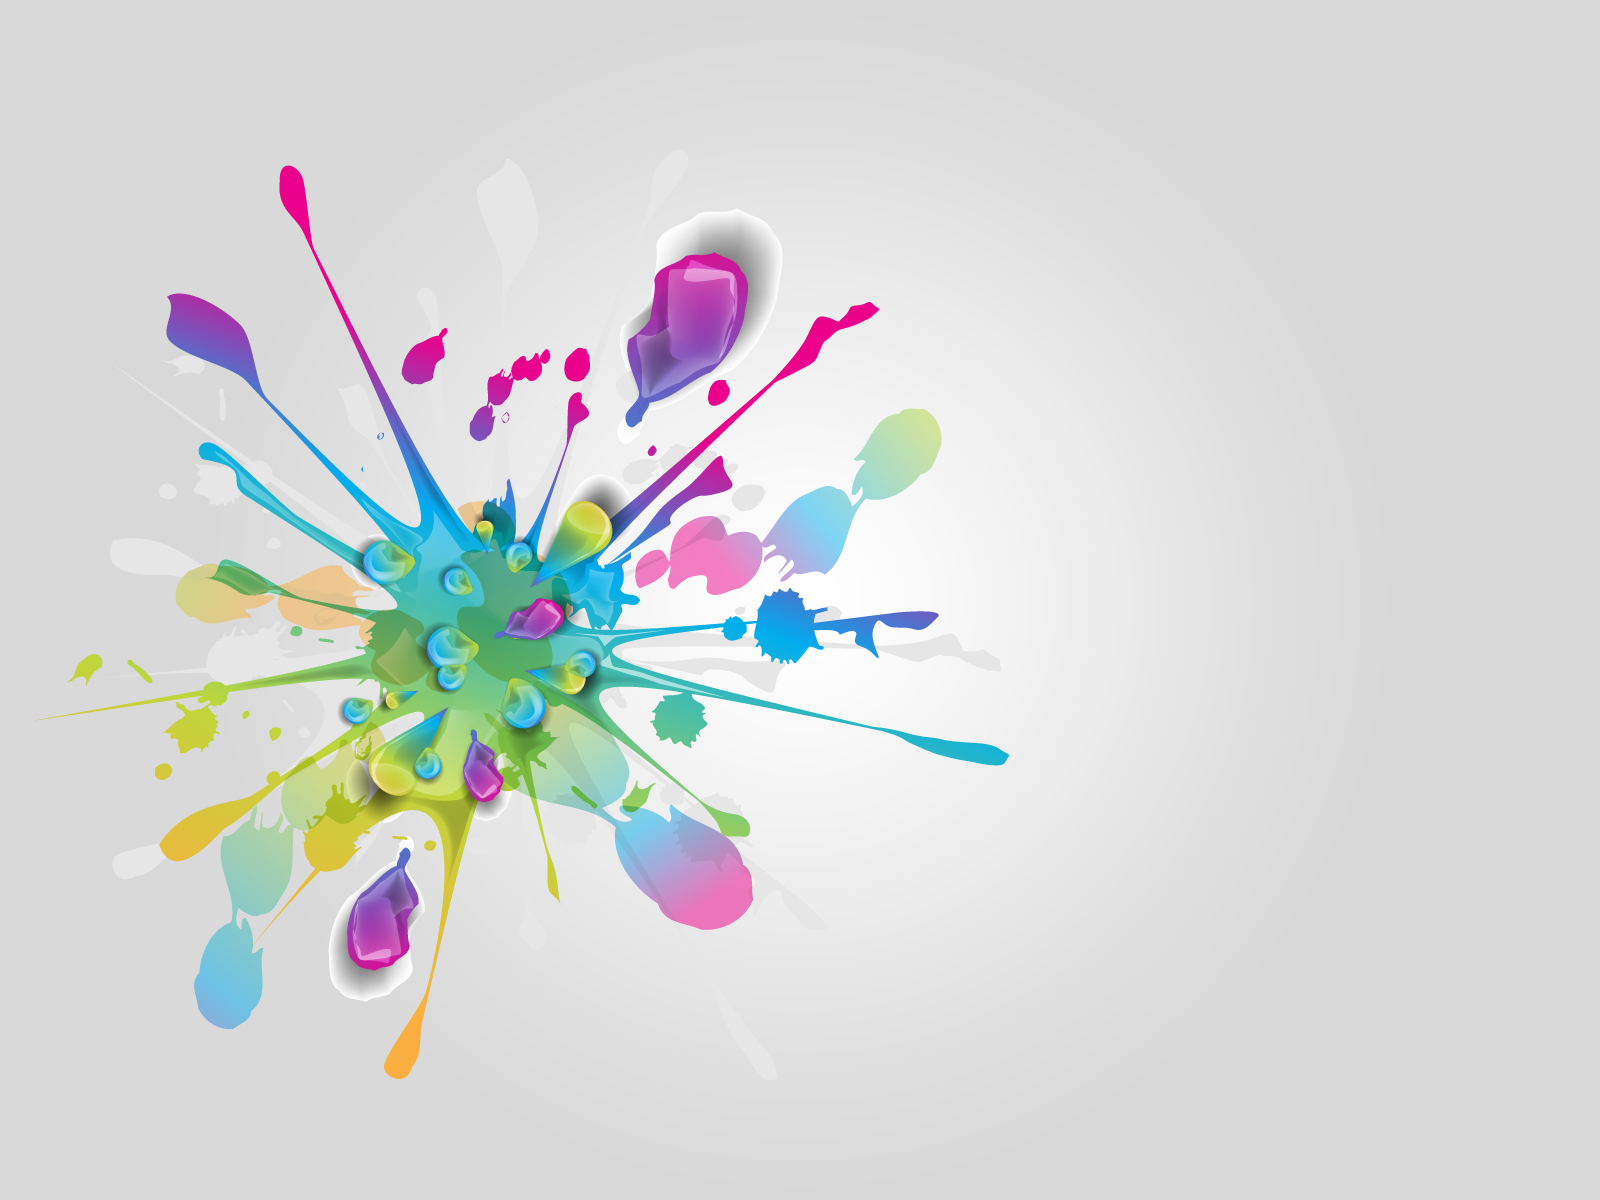 Colorful Splatter Backgrounds Abstract Grey Templates